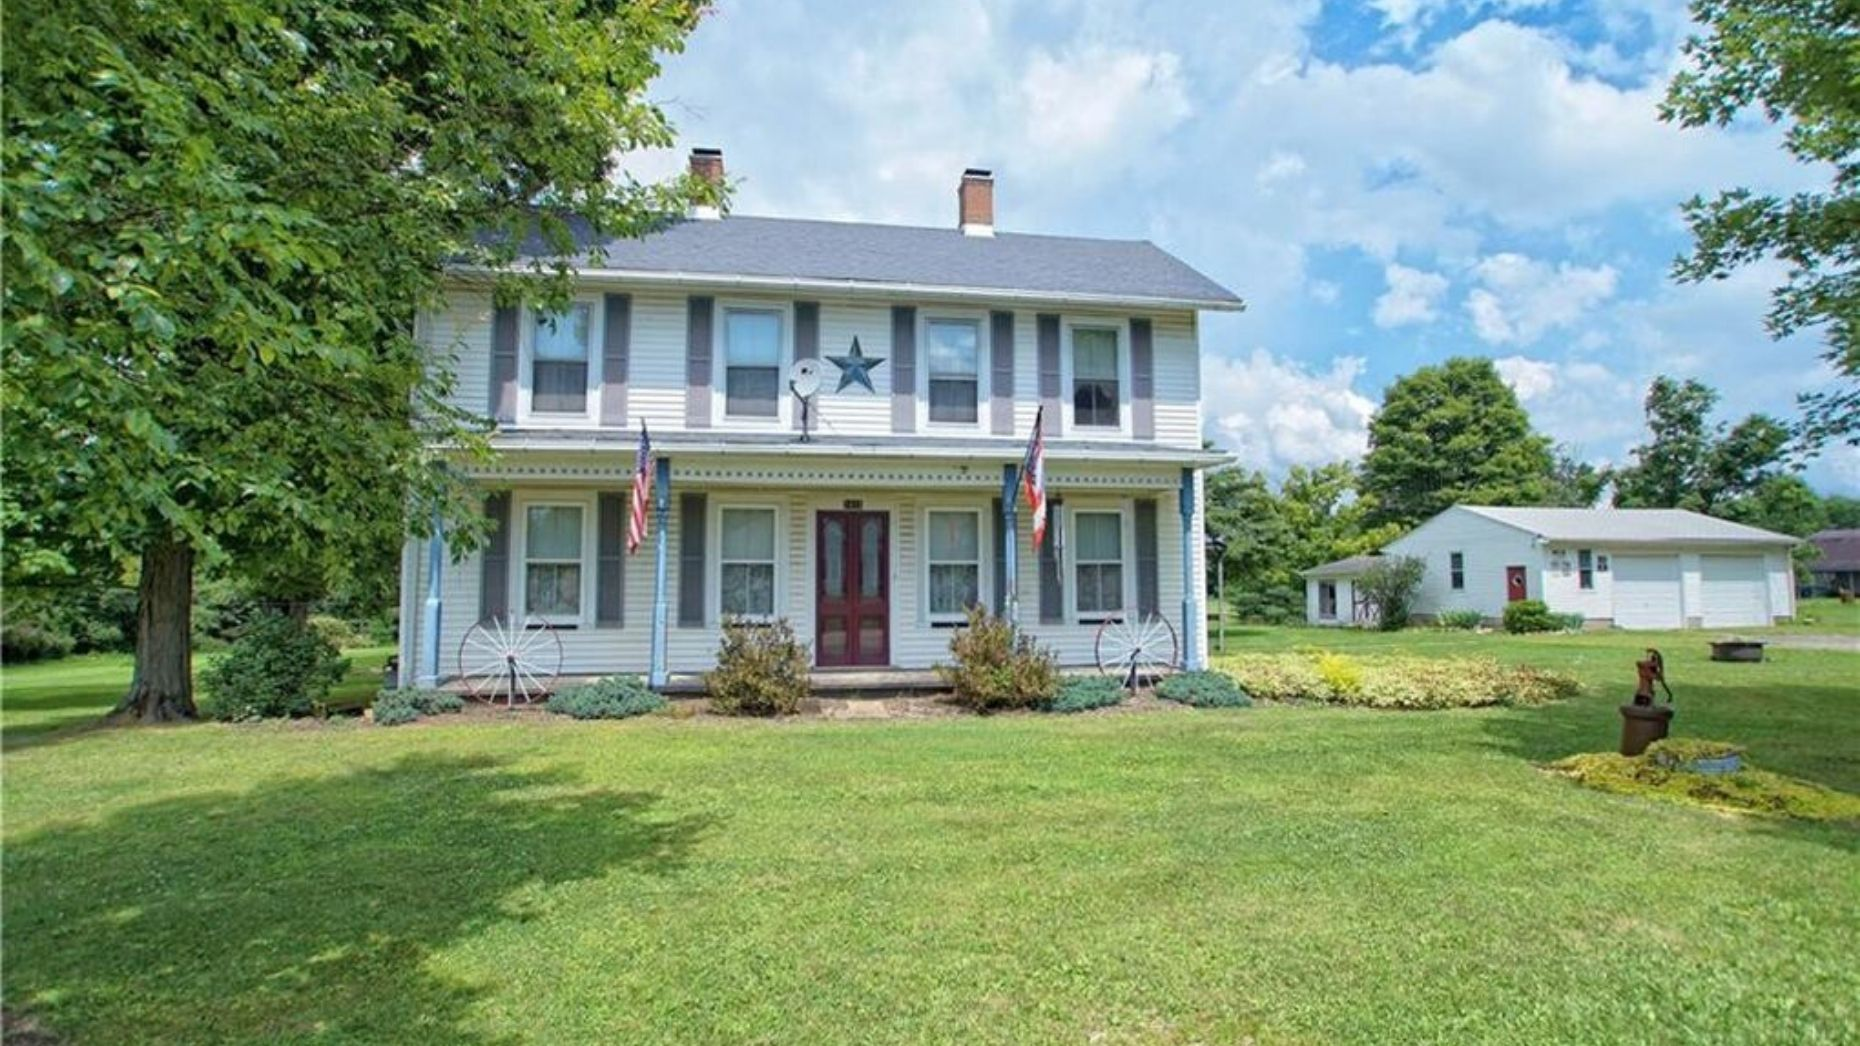 A historic Ohio home on the market for $0 — if you can move it